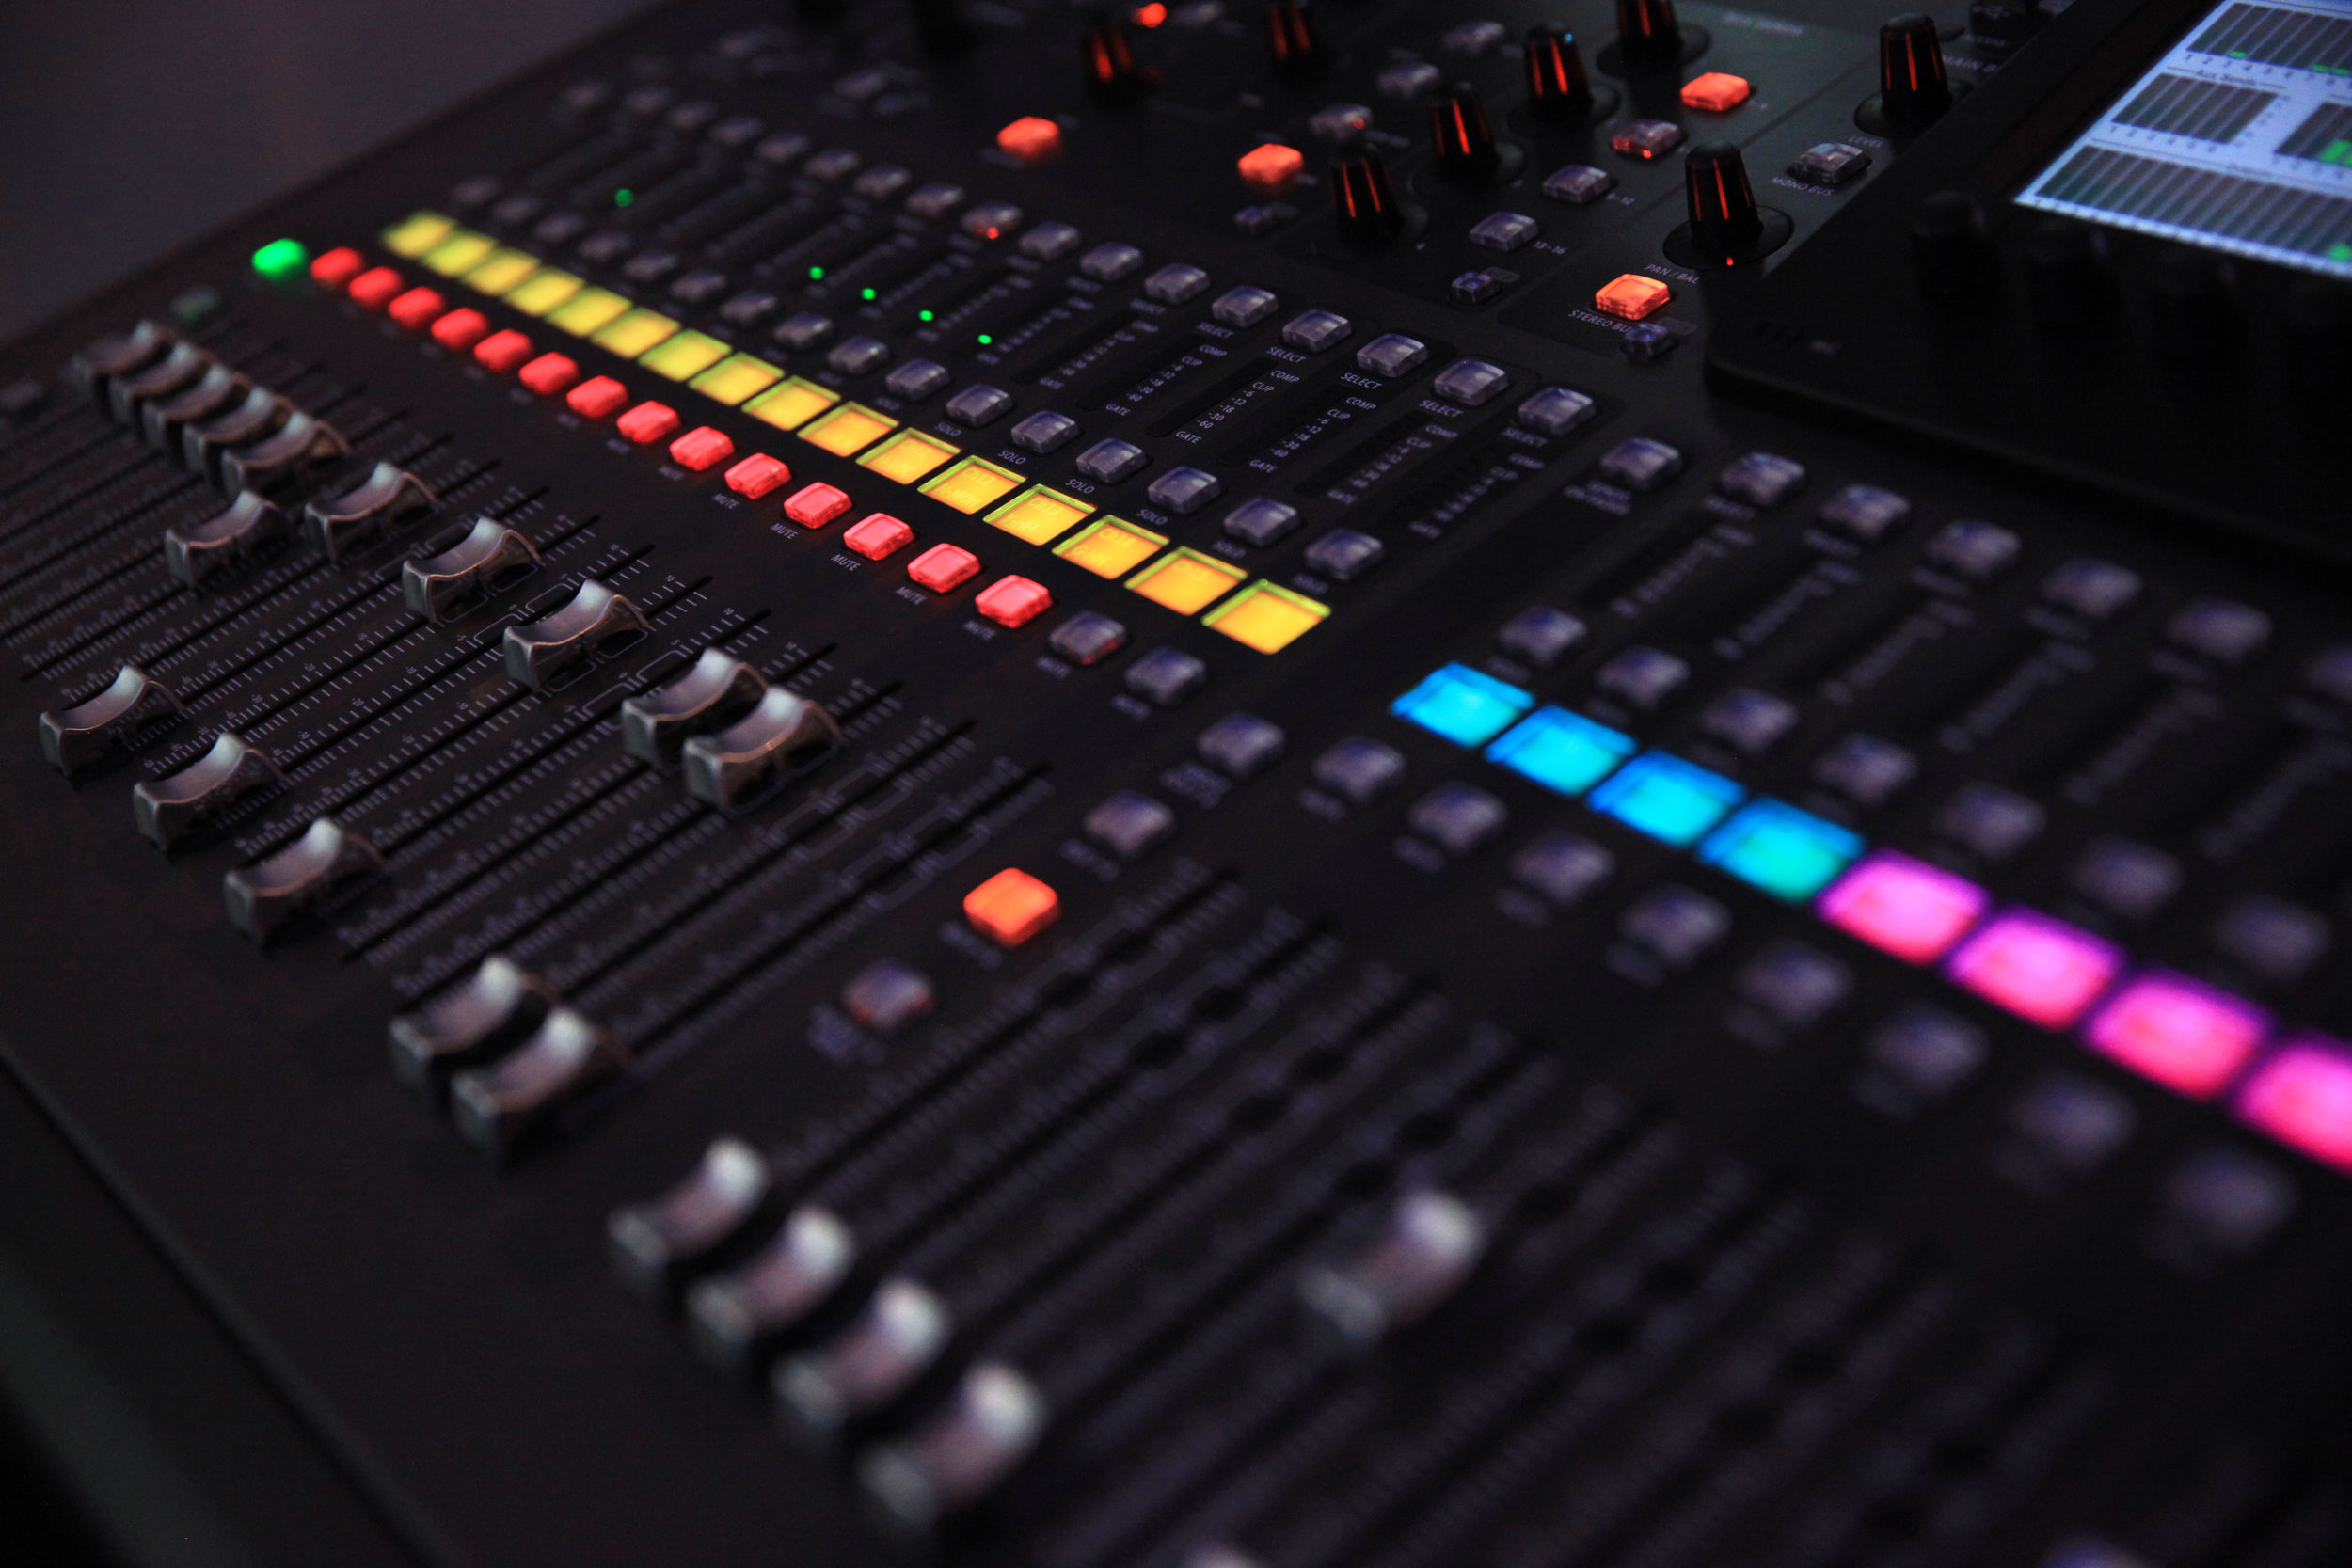 Band Audio - Behringer X32 Mixing Board (Angle 02).jpg